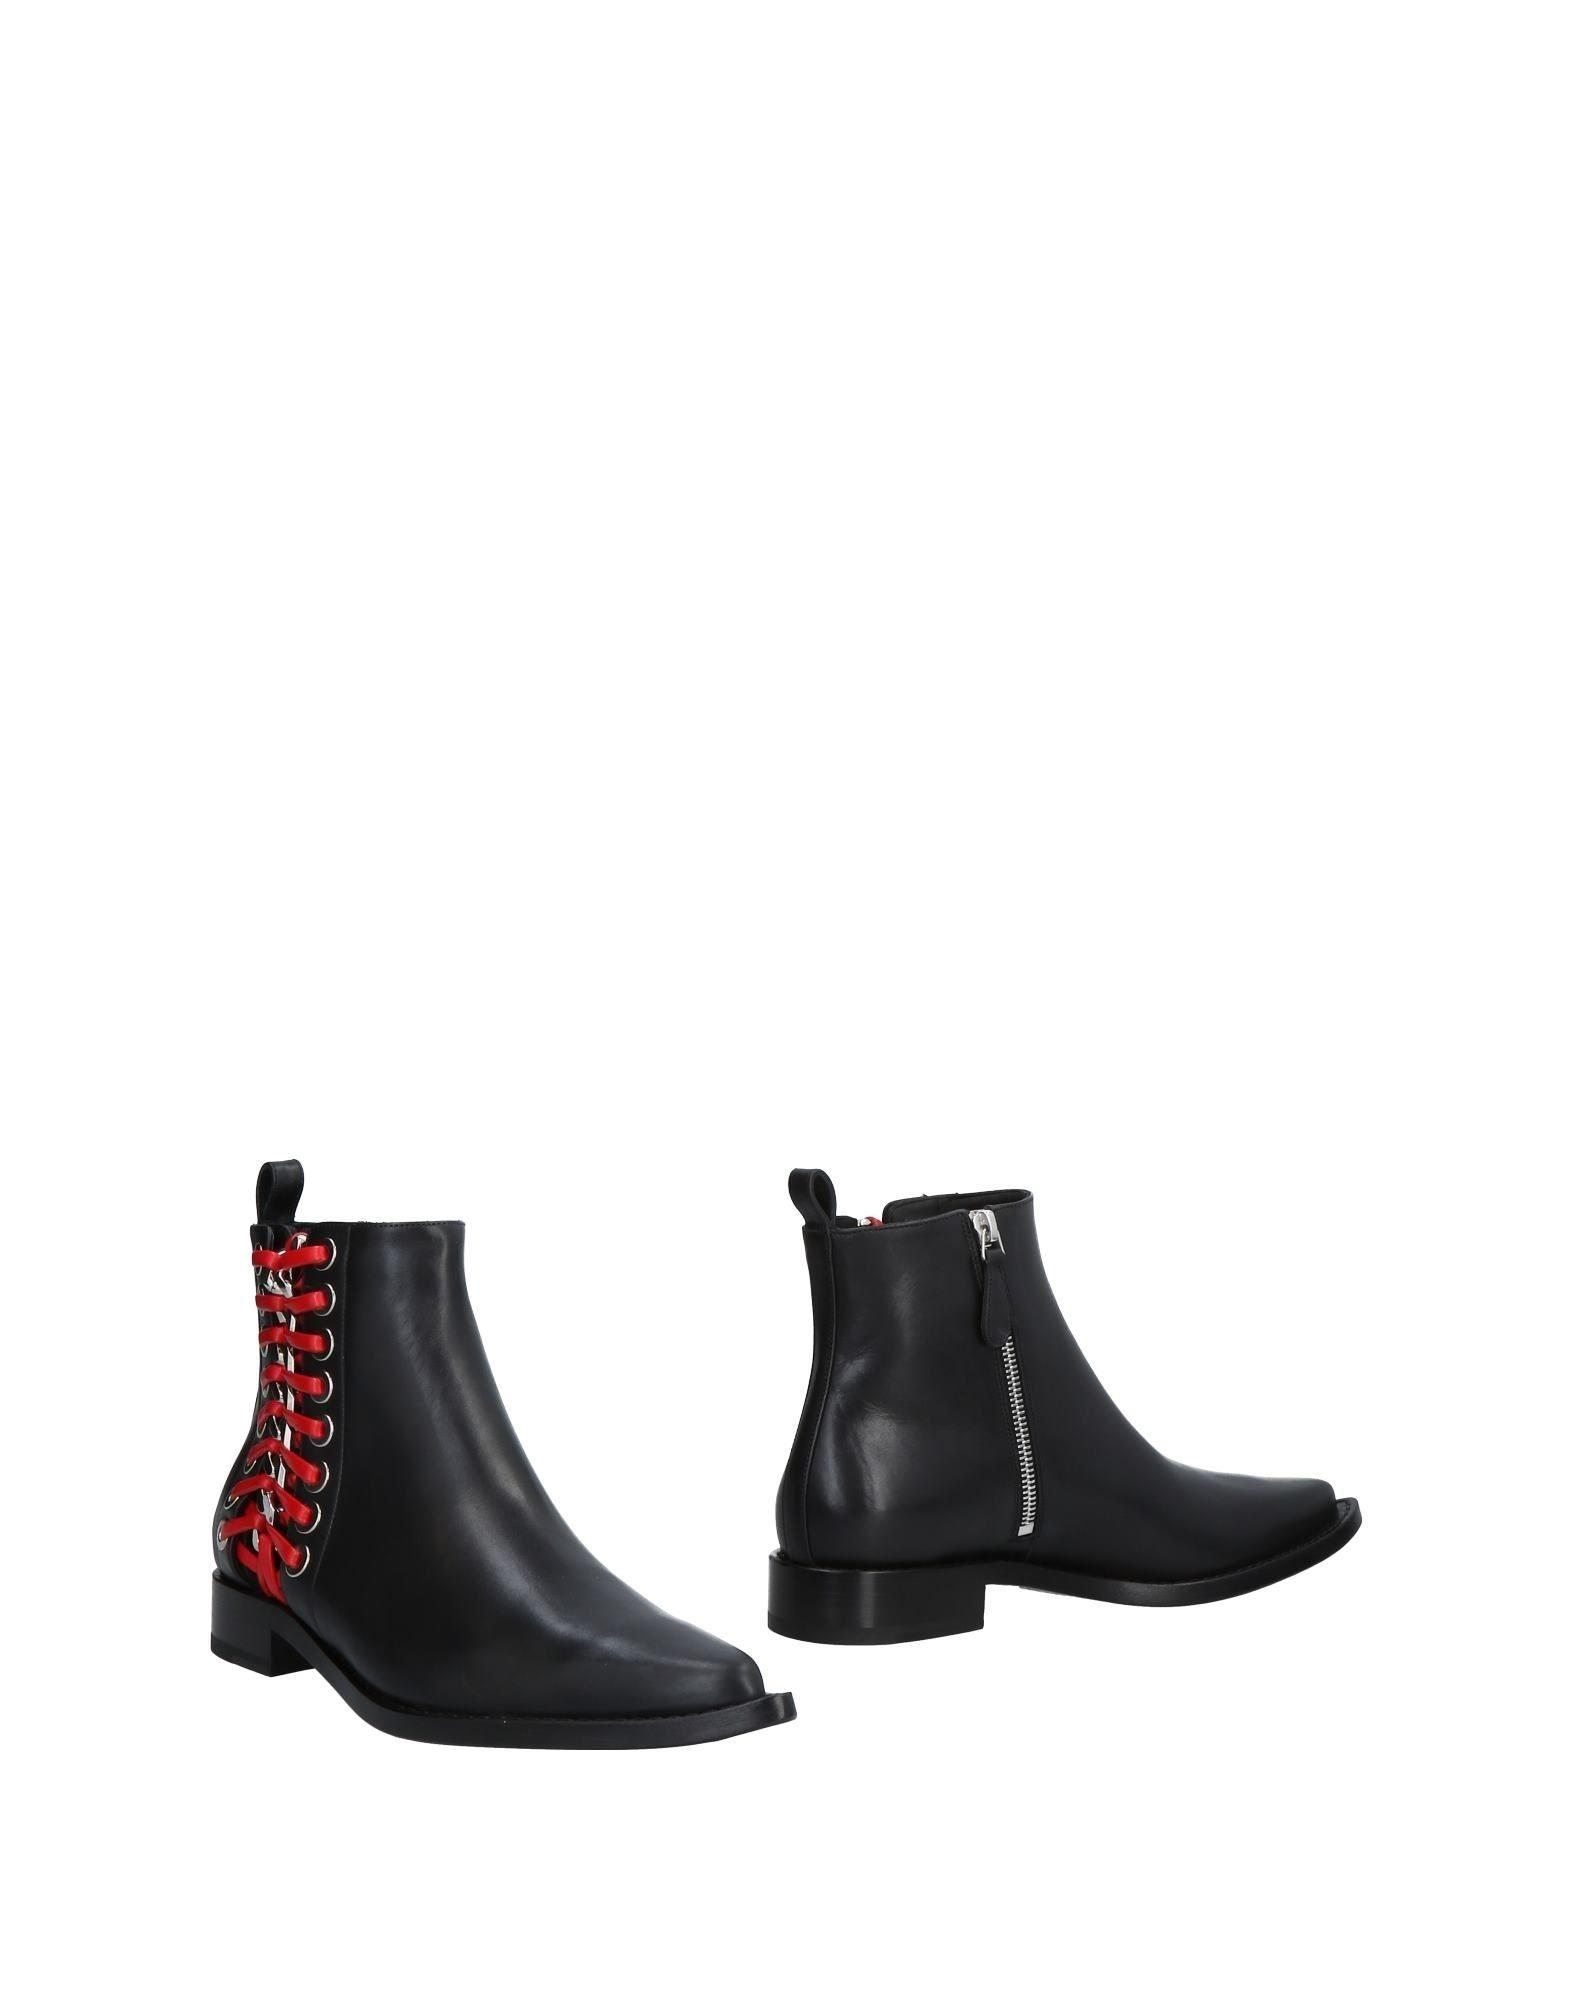 Alexander Mcqueen Leather Ankle Boots With Lace-Up Side In Black